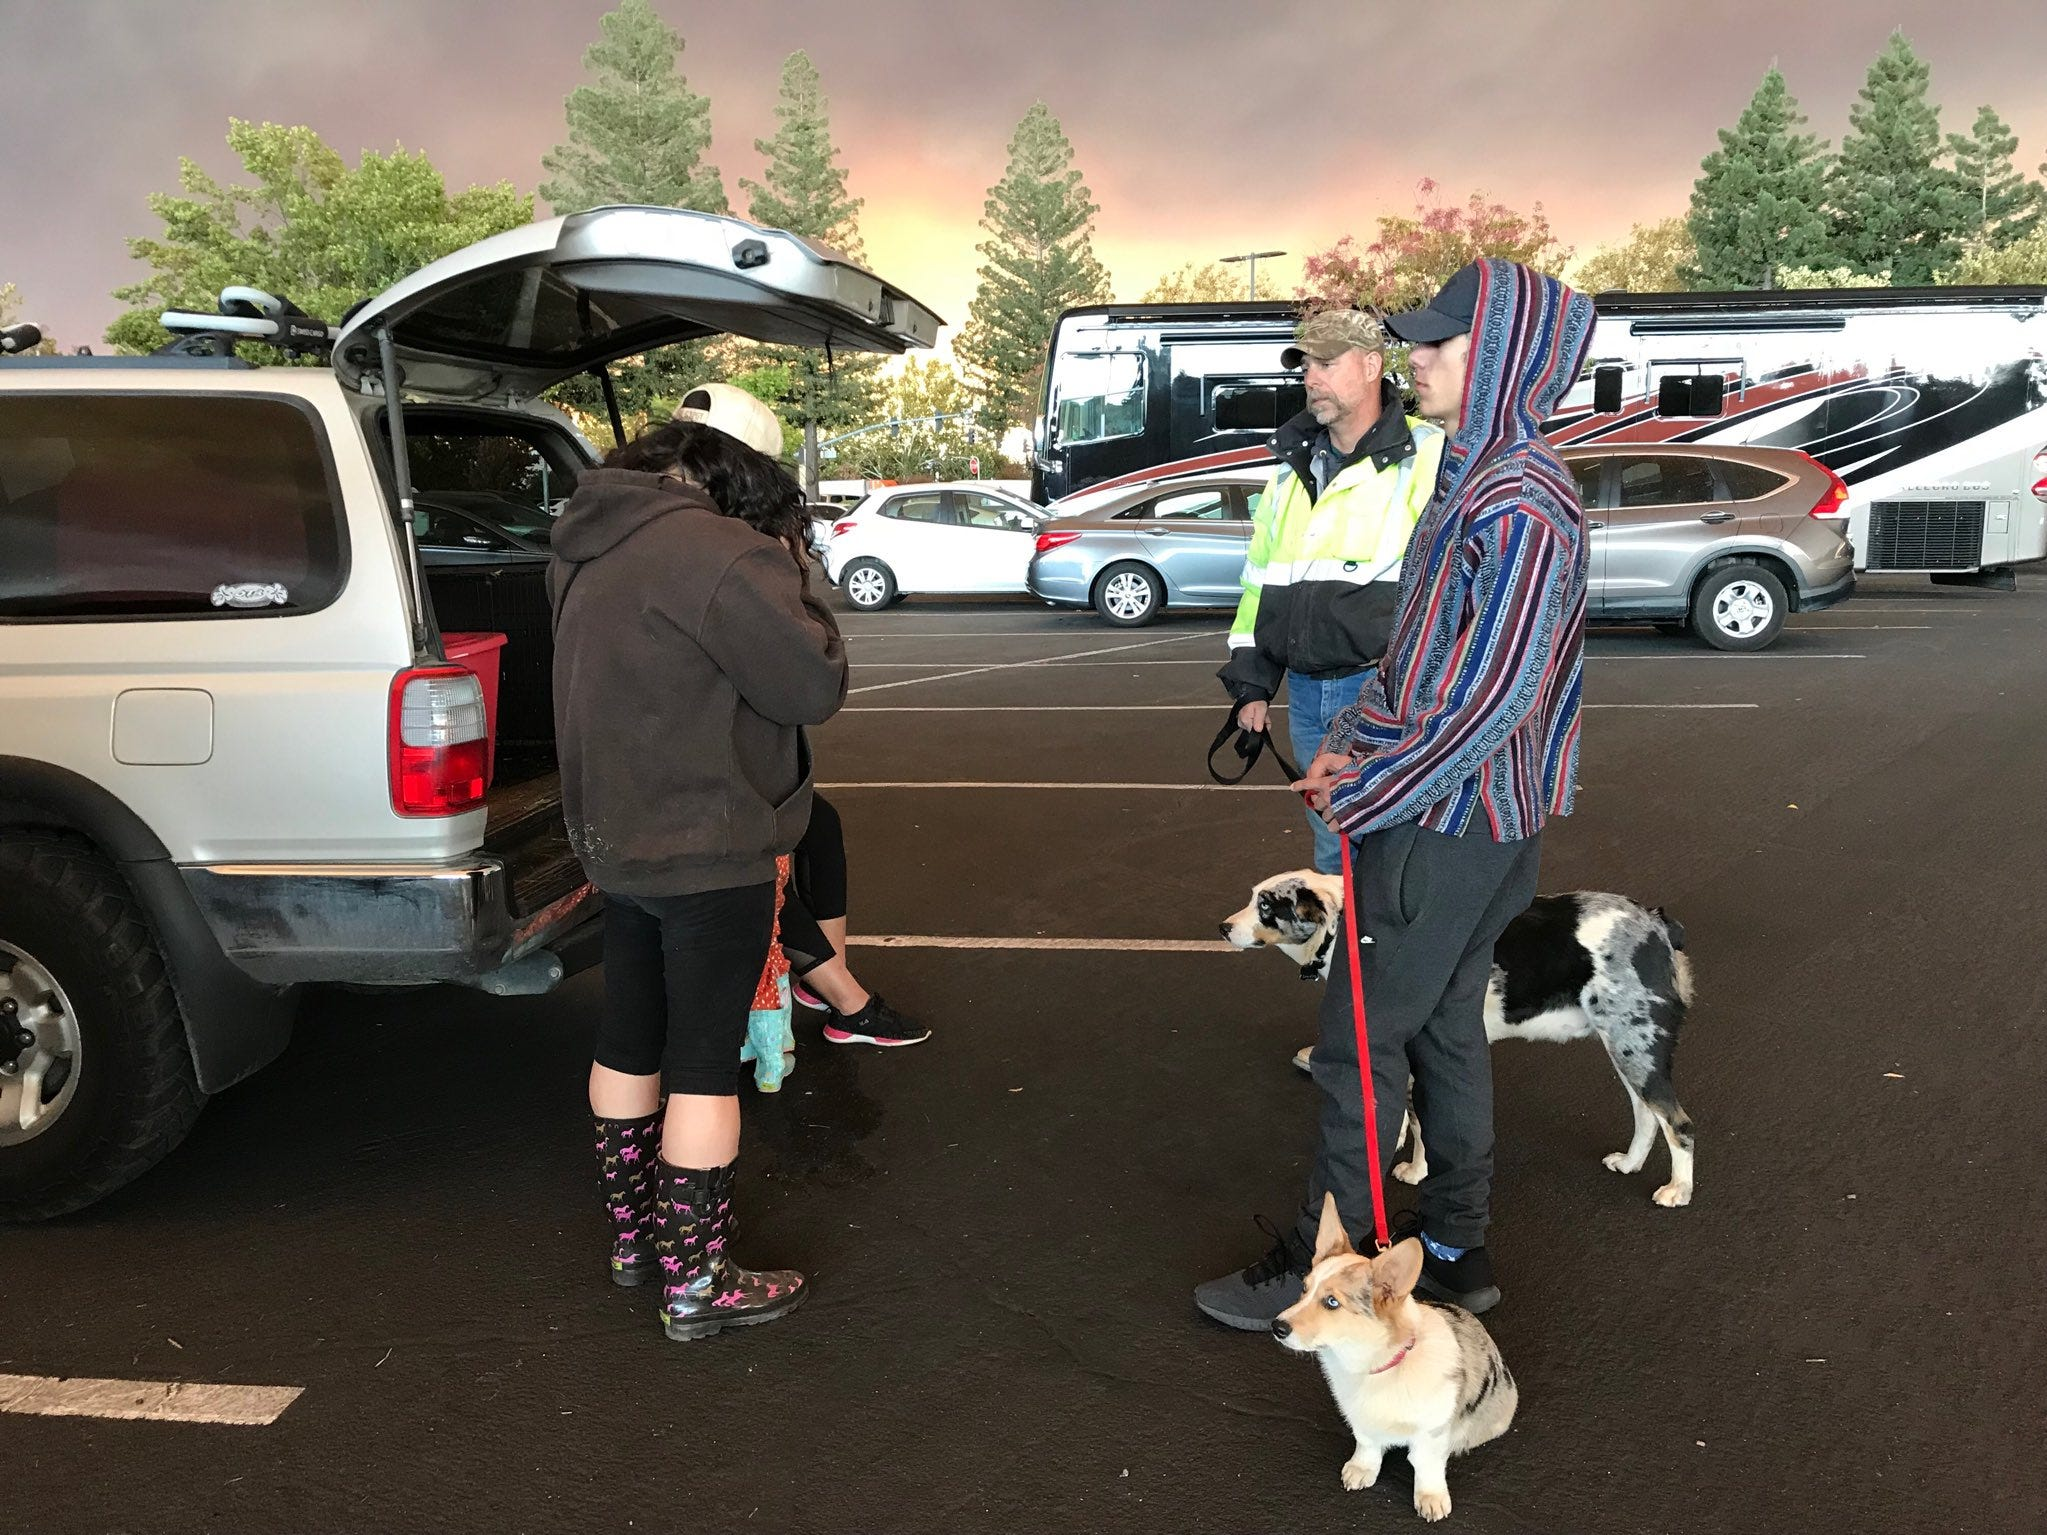 There are dozens of families in parking lots around Chico. They fled the Camp Fire in Paradise. The fire broke out about 6:30 a.m. on Thursday, Nov. 8, 2018.